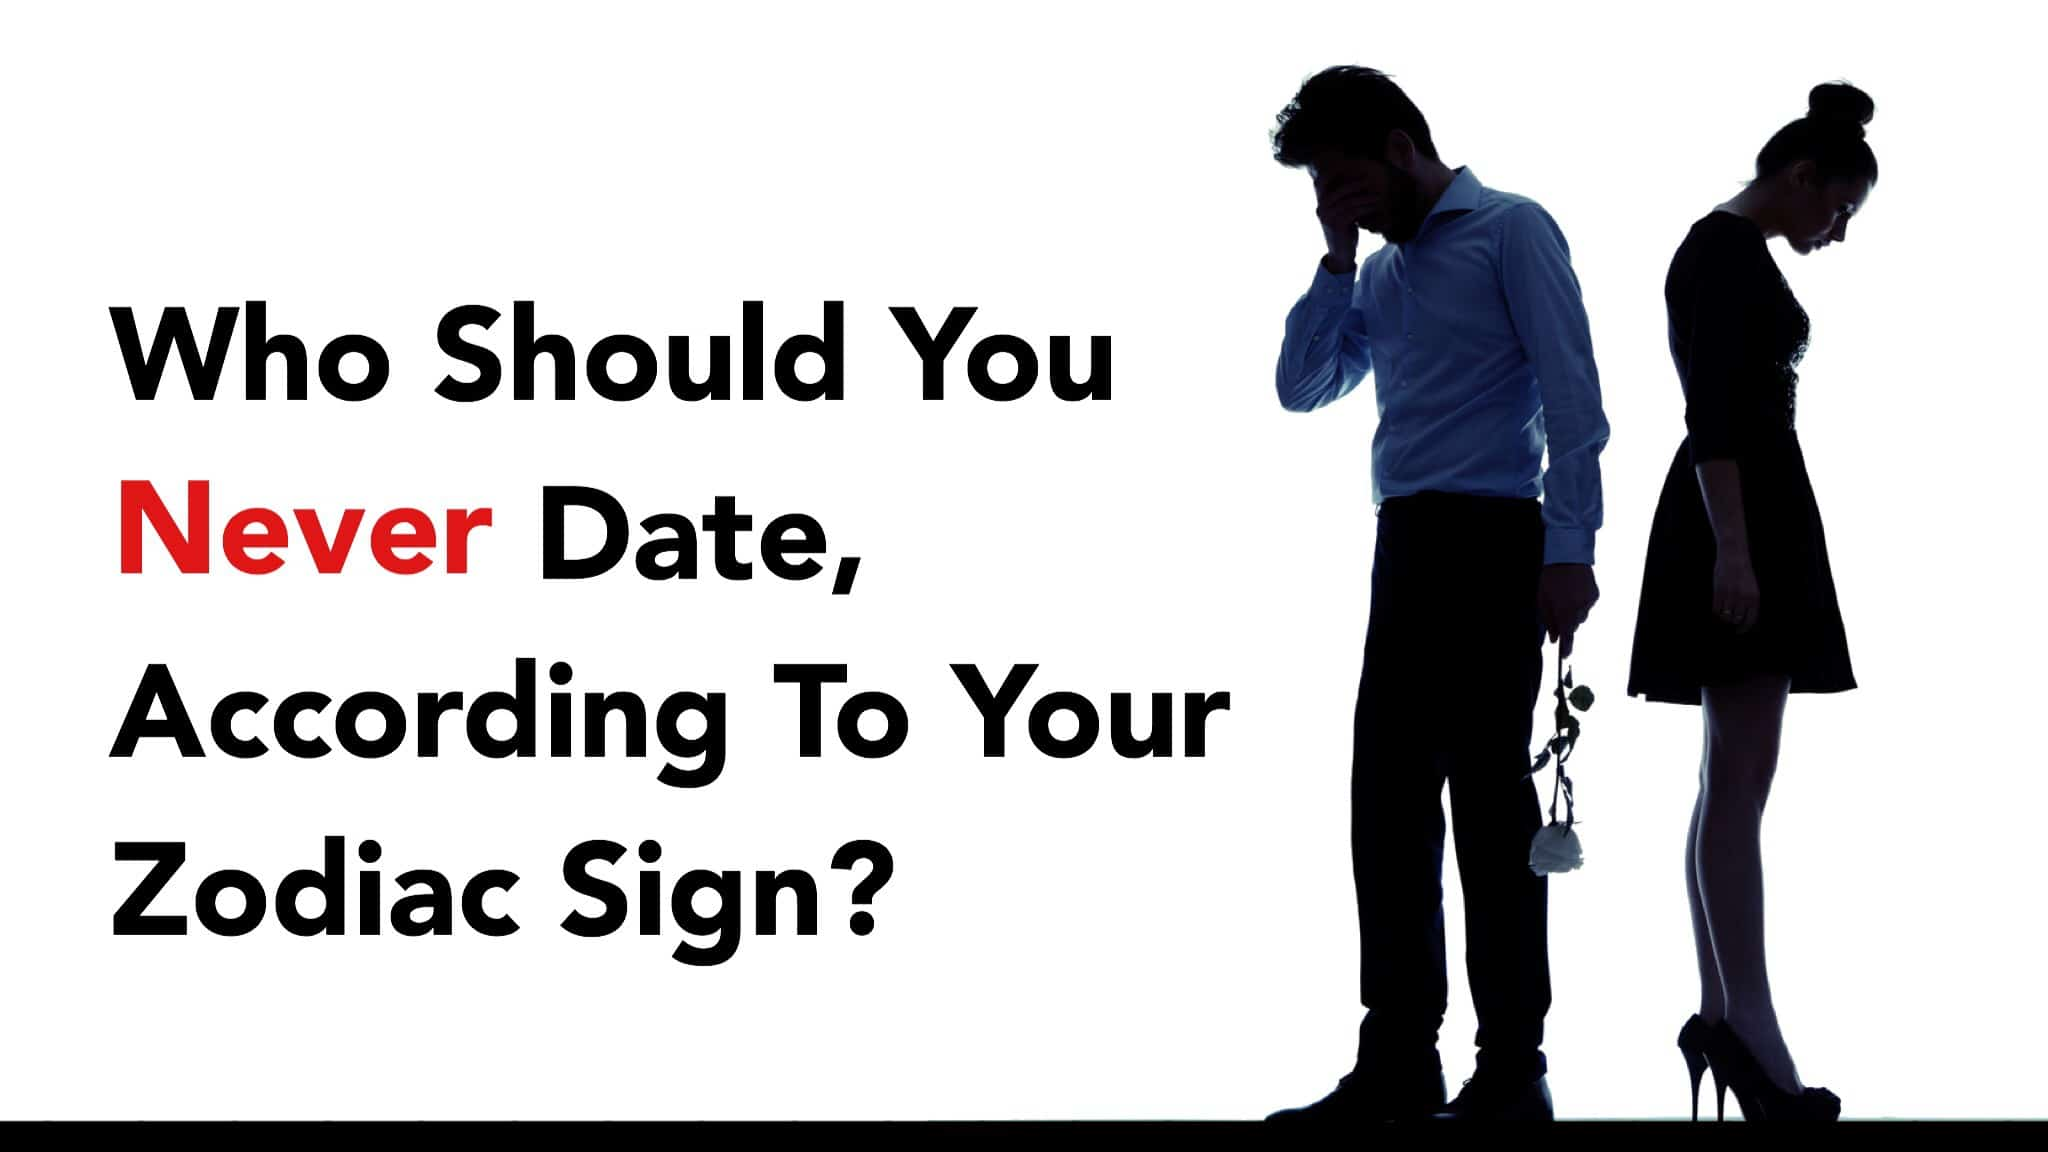 Dating site zodiac signs